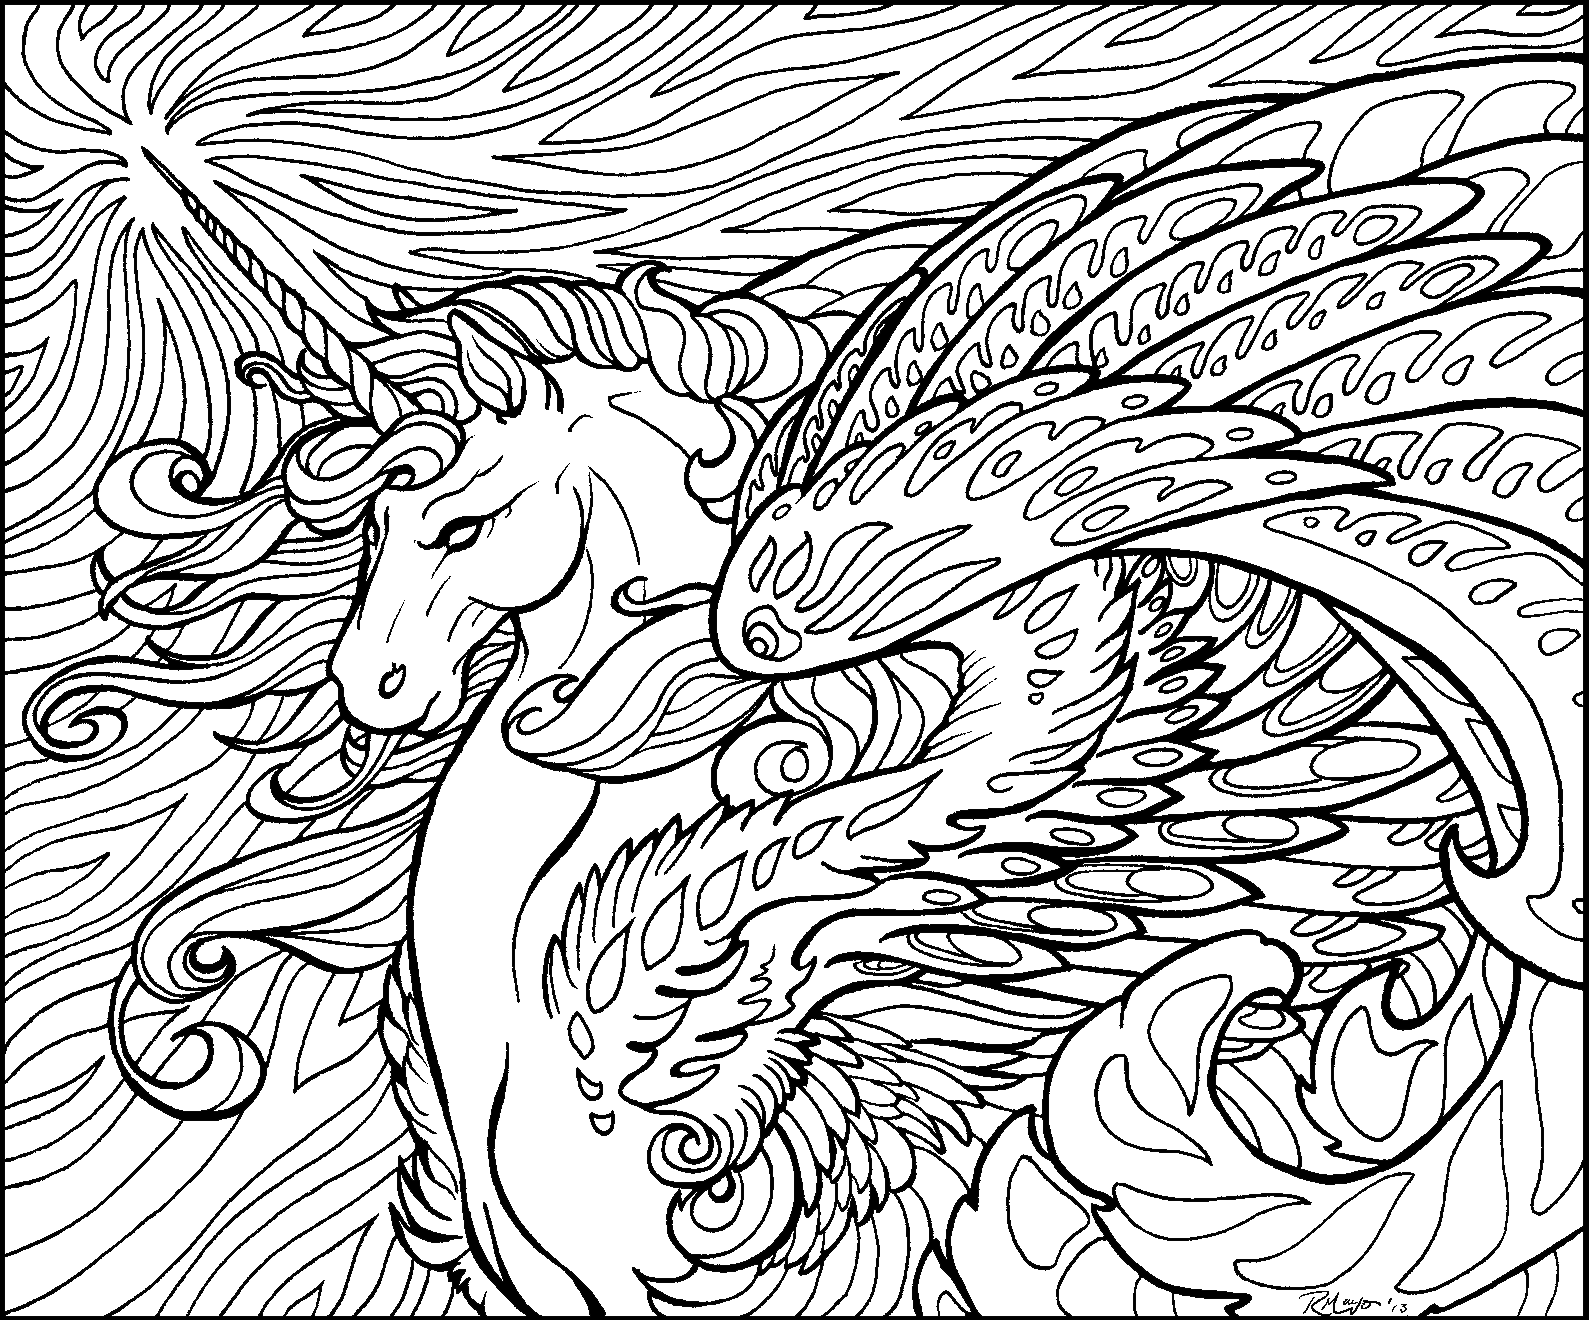 star wave unicorn lineart by rachaelm5 on deviantart